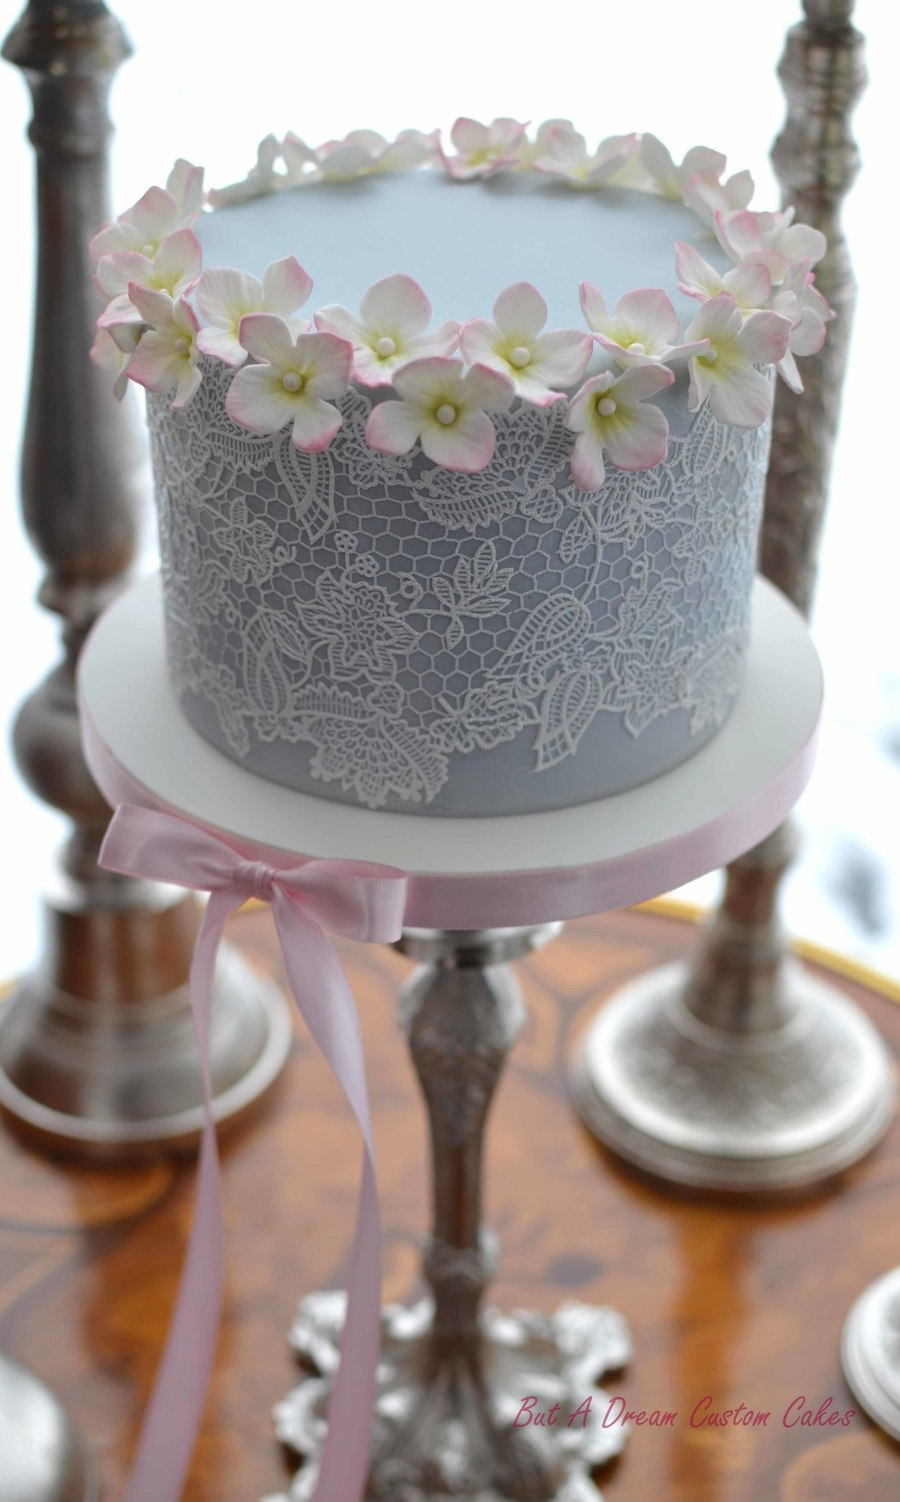 romantic little wedding cake with delicate sugar lace and hydrangea blossoms. Black Bedroom Furniture Sets. Home Design Ideas